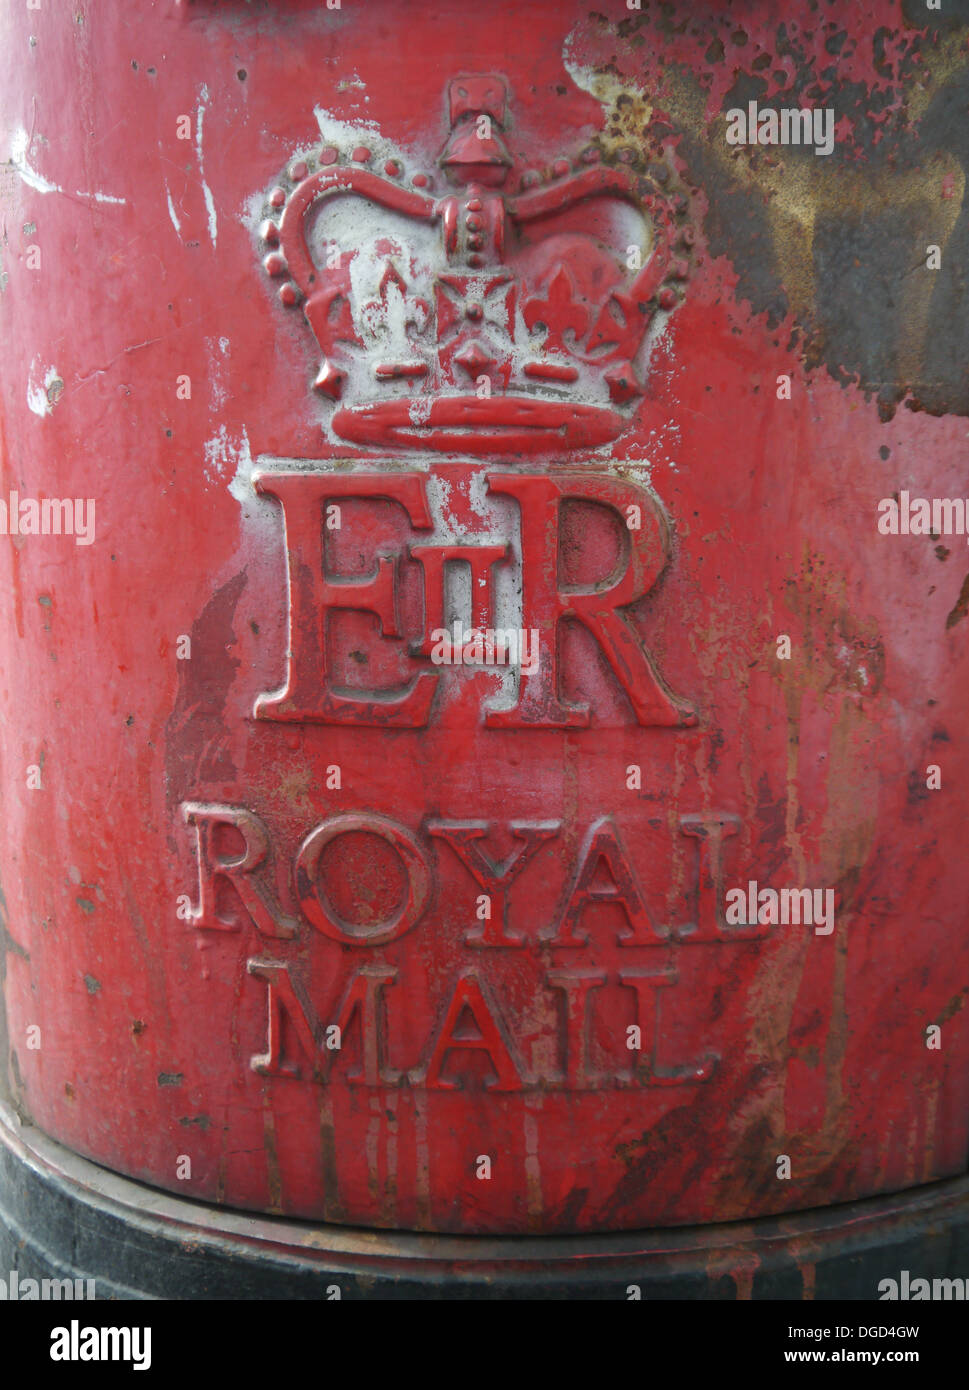 Image of the Royal Mail Logo on a Post Box - Stock Image